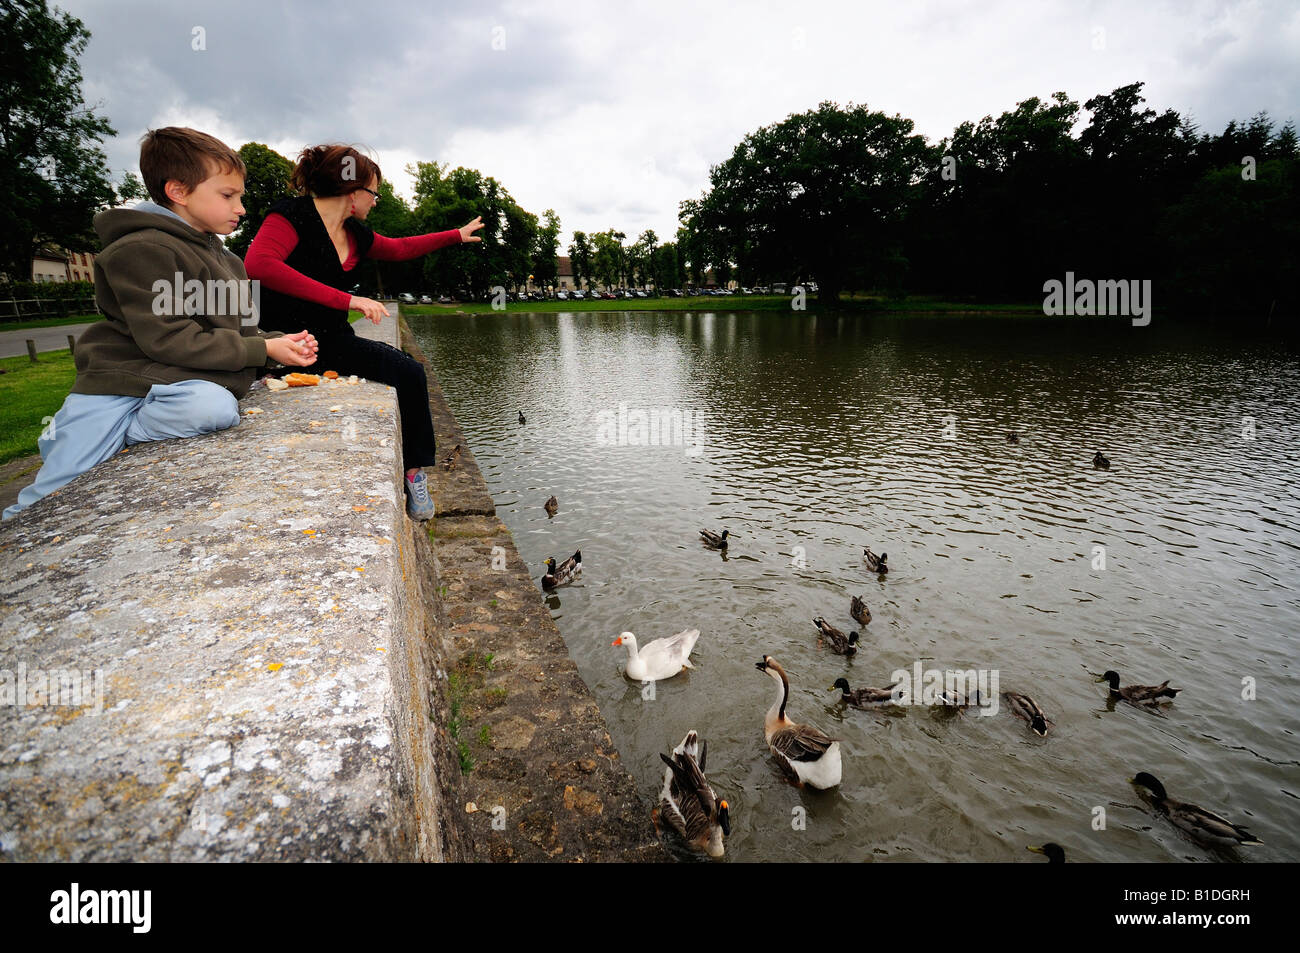 Rambouillet park mother and son feeding ducks birds - Stock Image